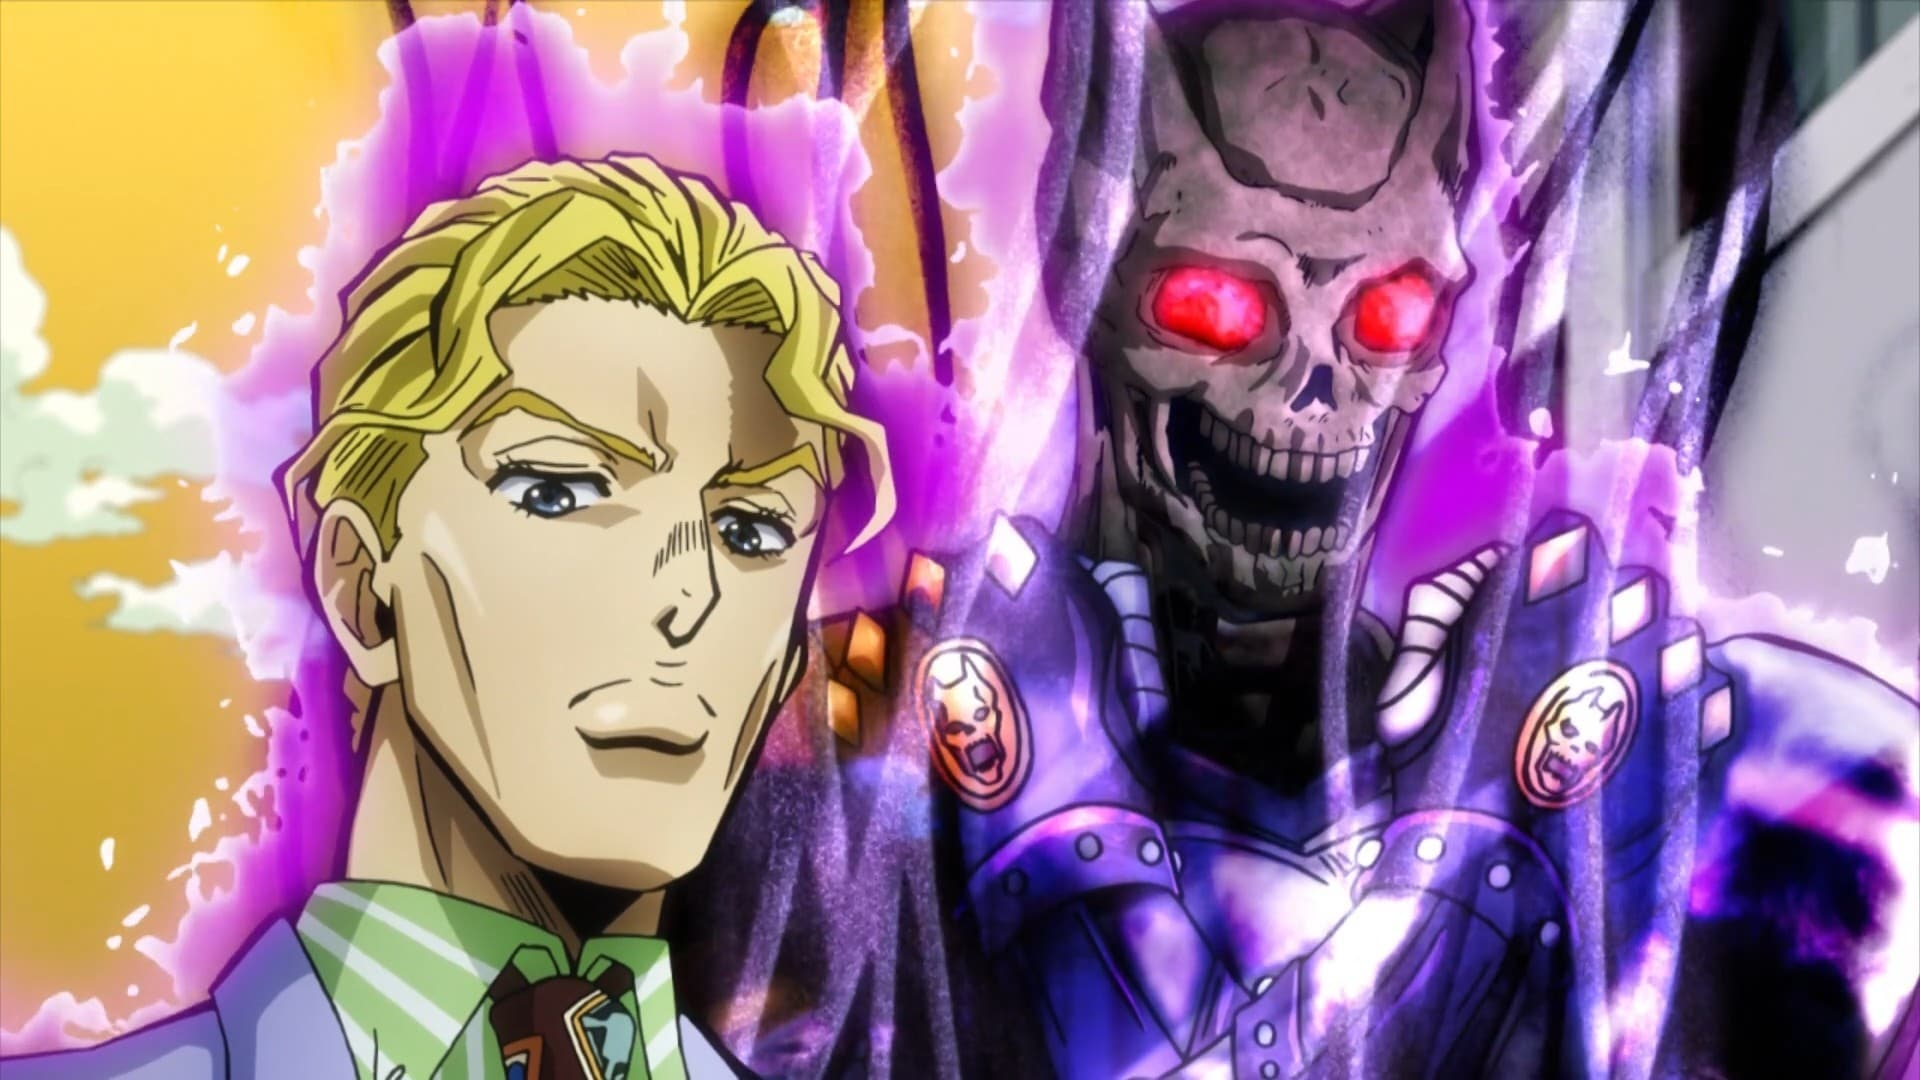 JoJo's Bizarre Adventure Season 3 :Episode 22  Yoshikage Kira Just Wants to Live Quietly, Part 2